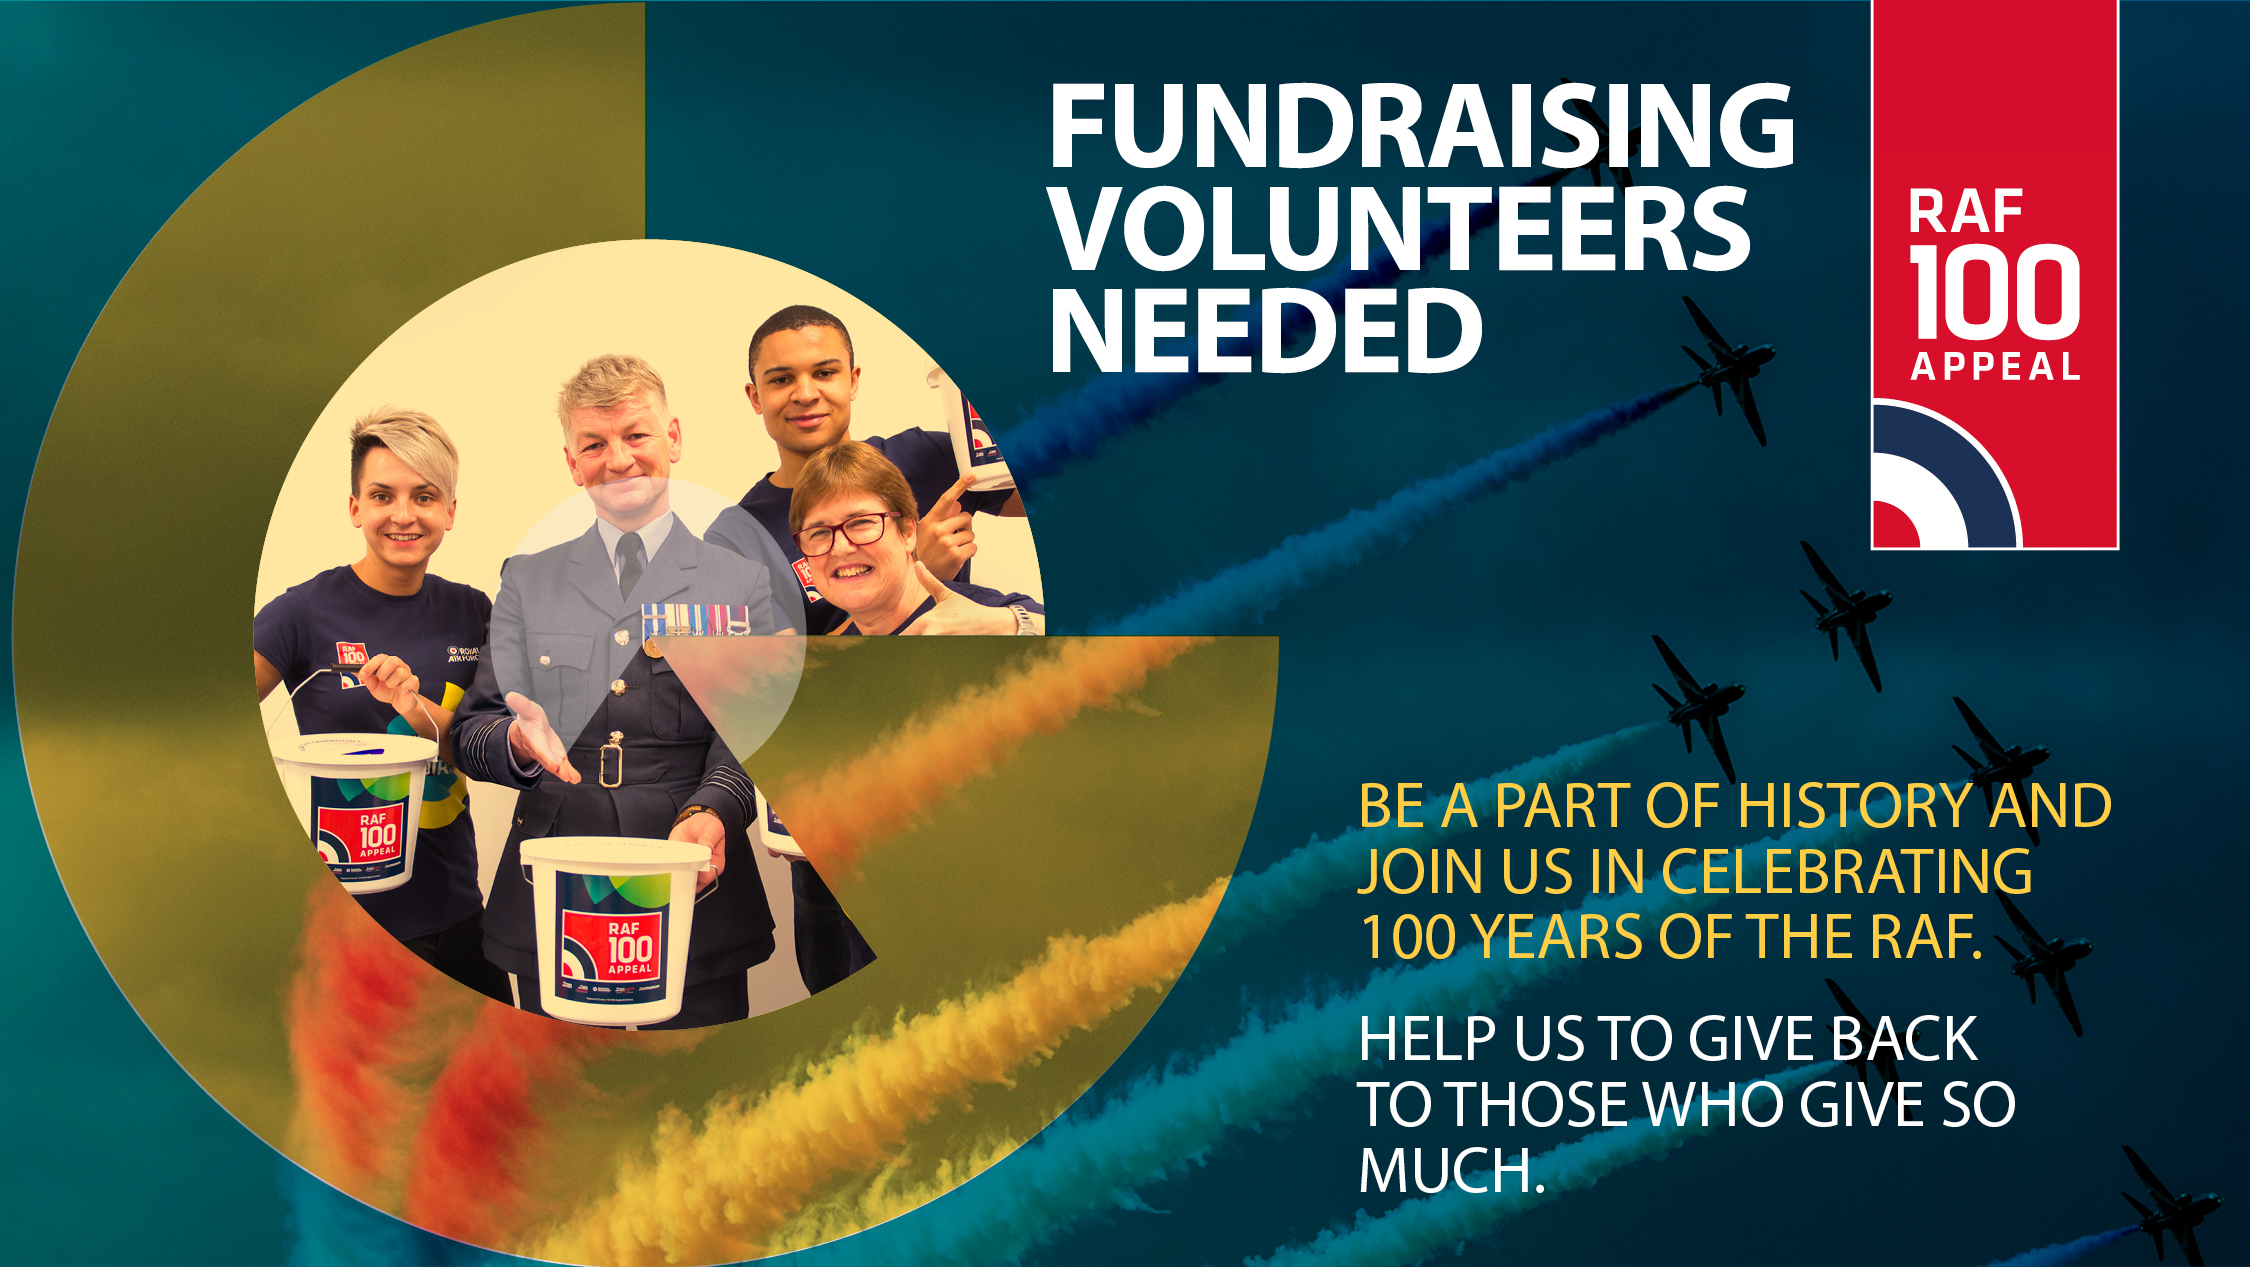 Become a Fundraising Volunteer and help the RAF 100 Appeal